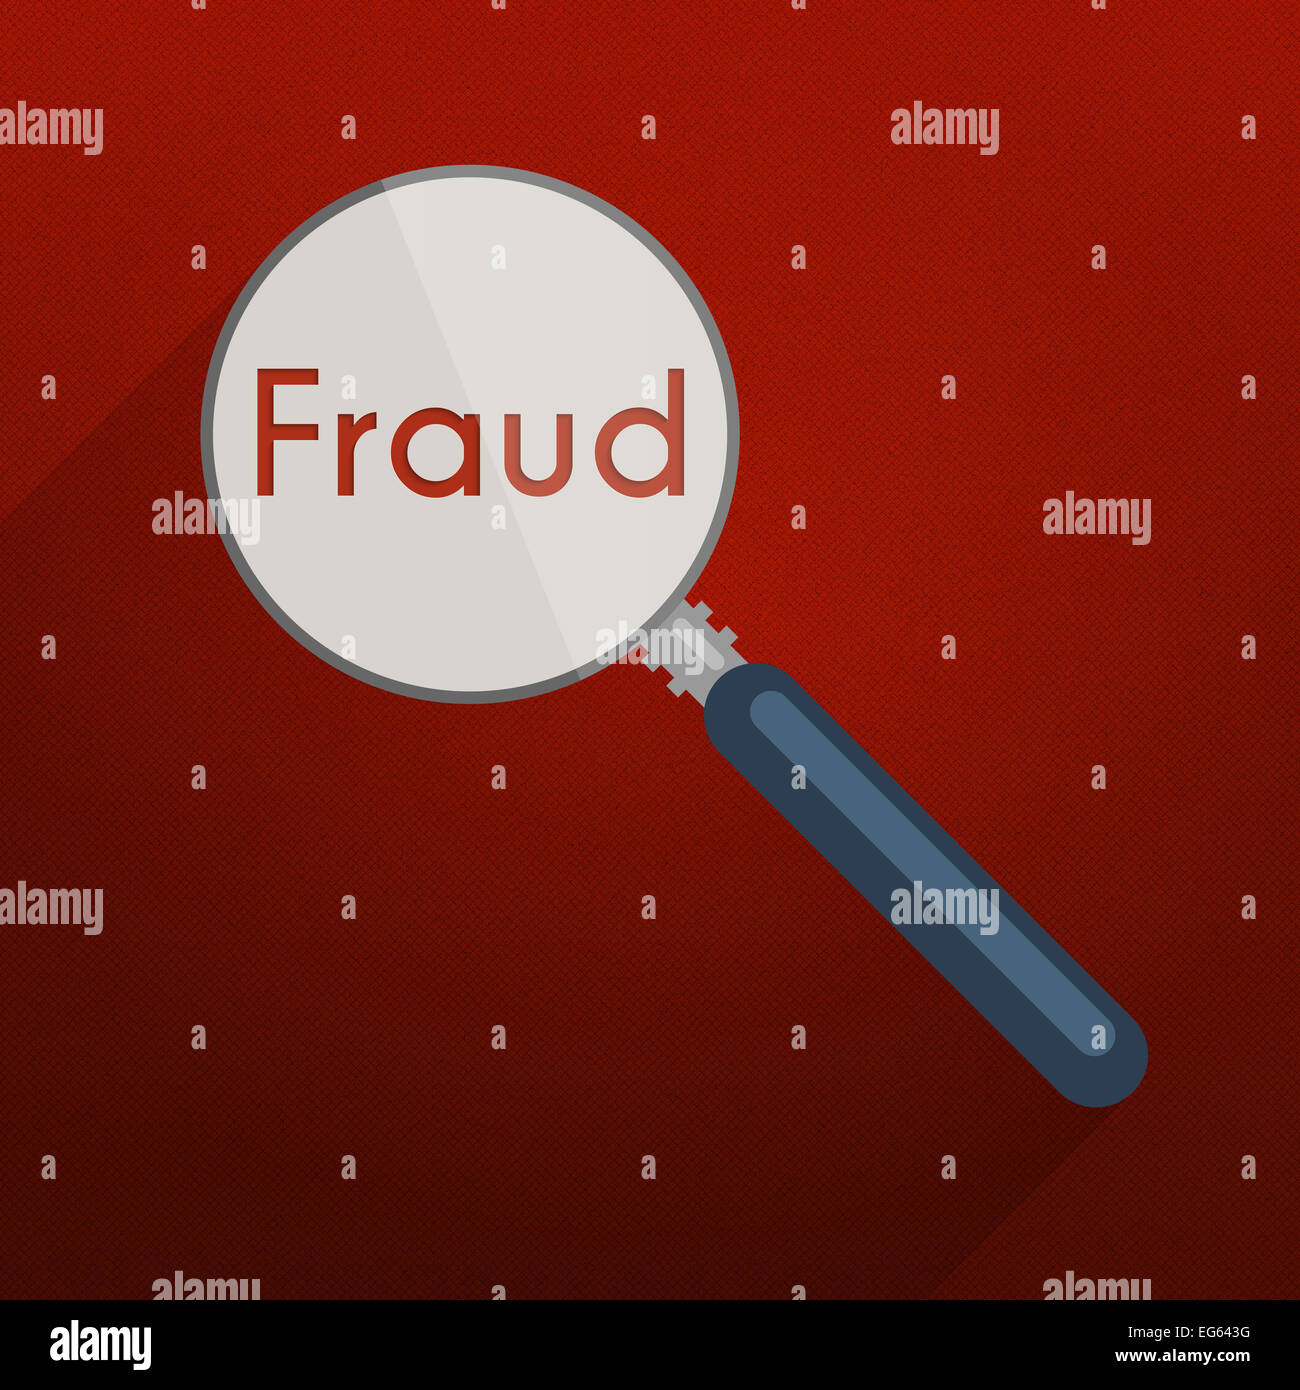 Concept of searching for evidence and clues for infringement, fraud or tax evasion. Flat design illustration with - Stock Image